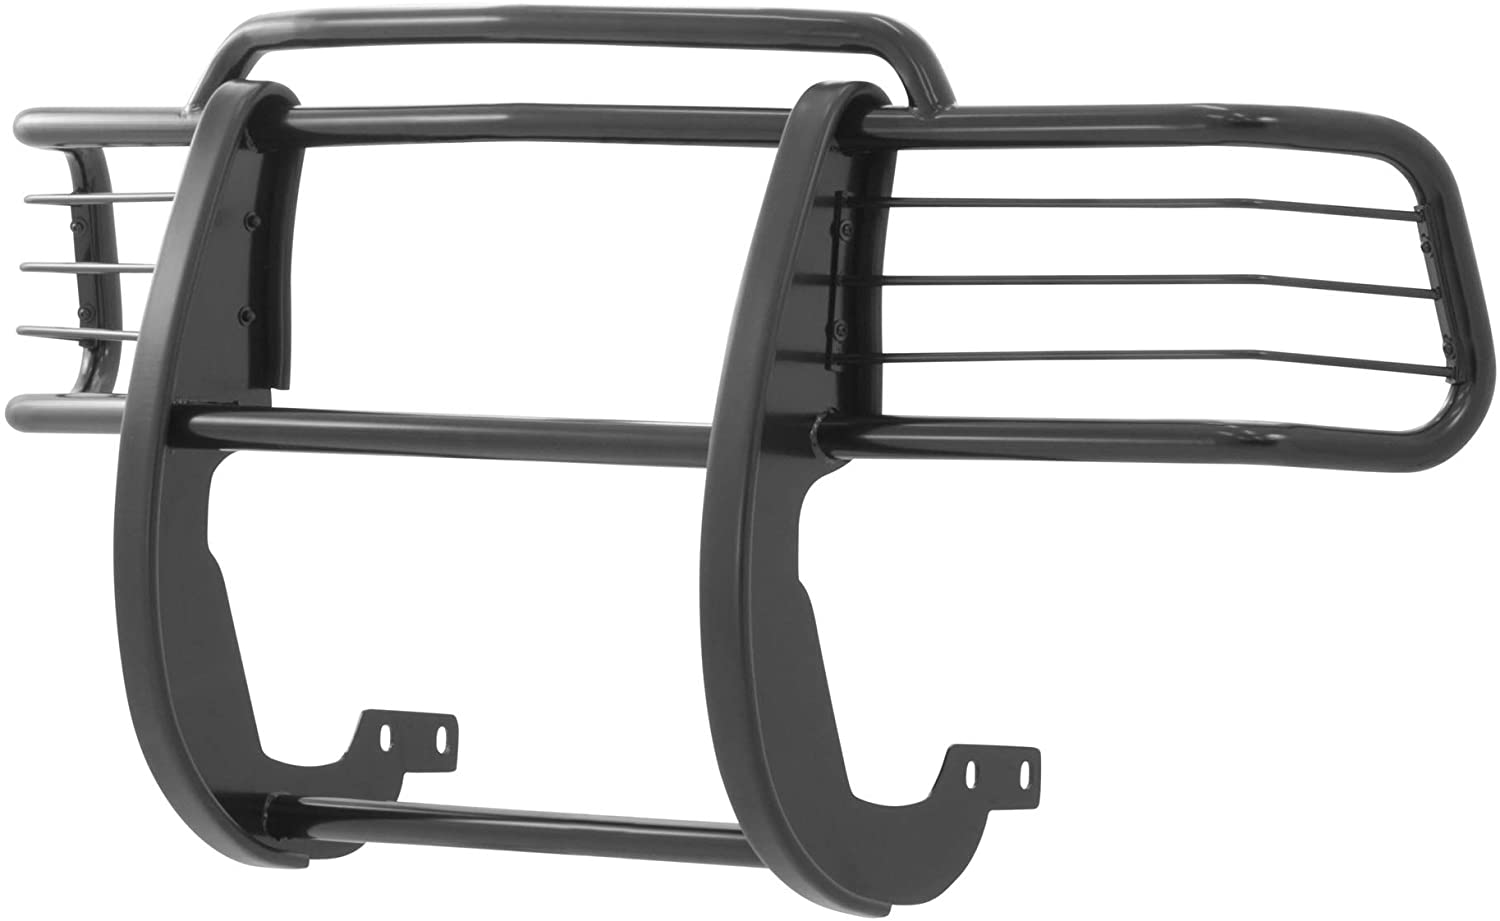 ARIES 4044 1-1/2-Inch Black Steel Grille Guard, No-Drill, Select Chevrolet Blazer, S-10